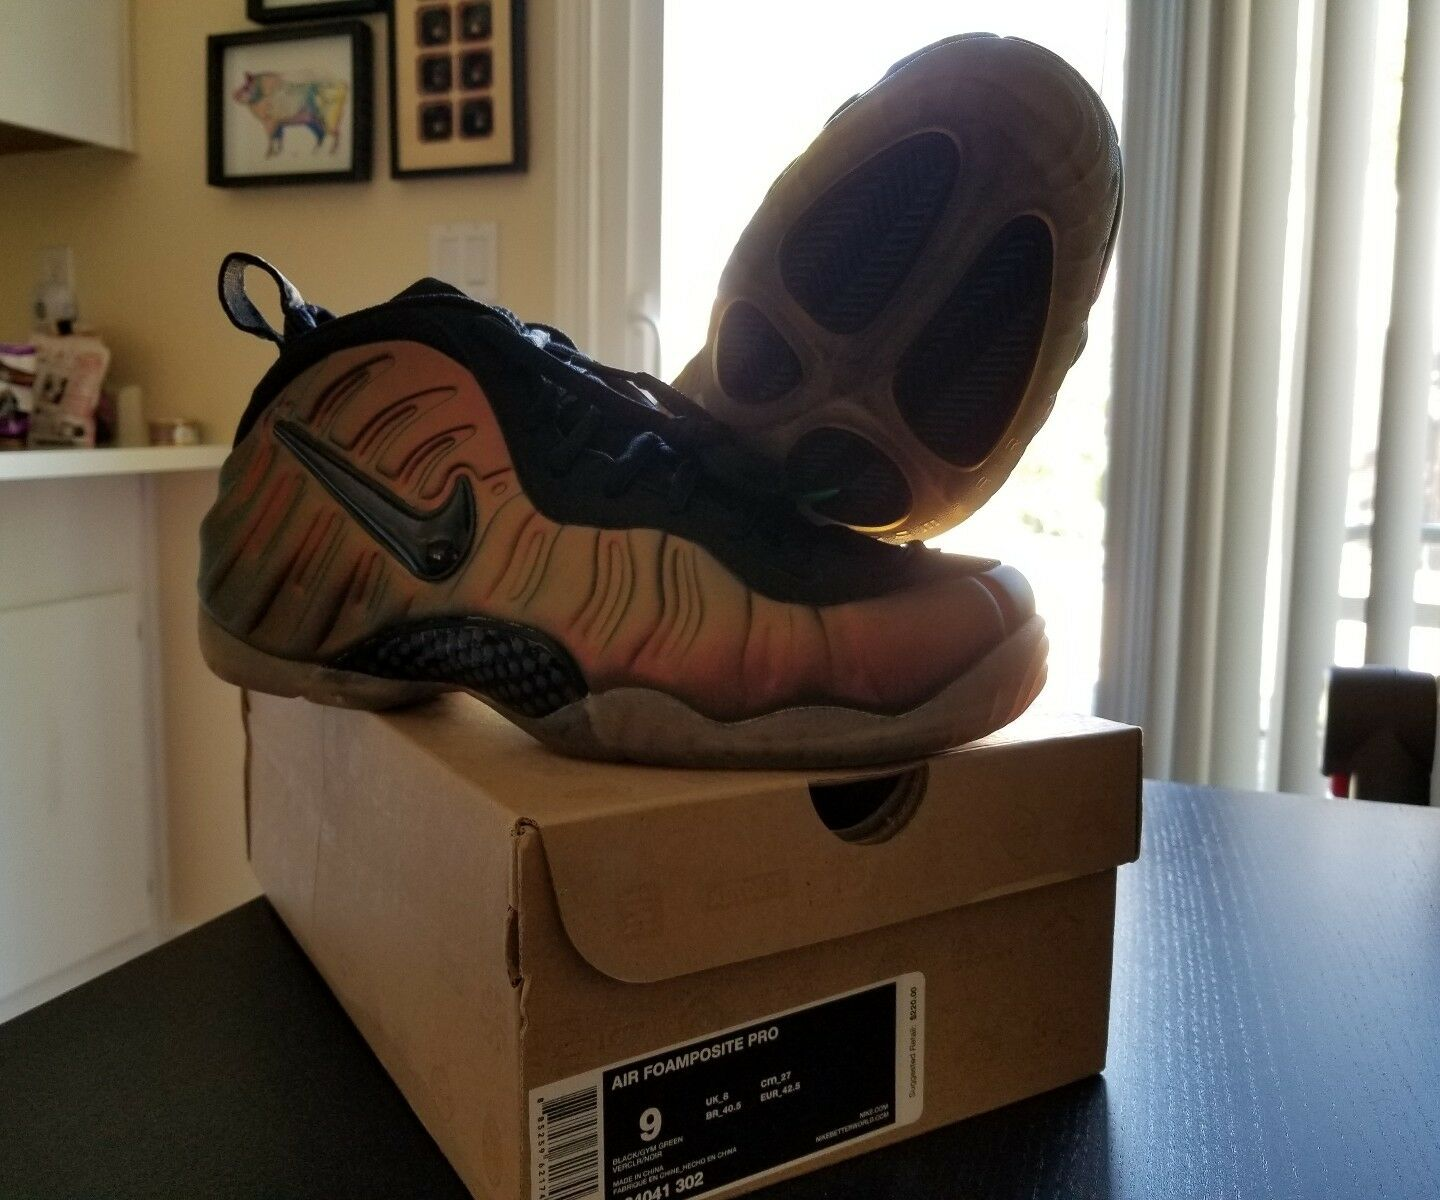 New Authentic Nike AIR FOAMPOSITE PRO GYM GREEN Deadstock BLACK Sz 9 624041-302 Deadstock GREEN bfe3b7